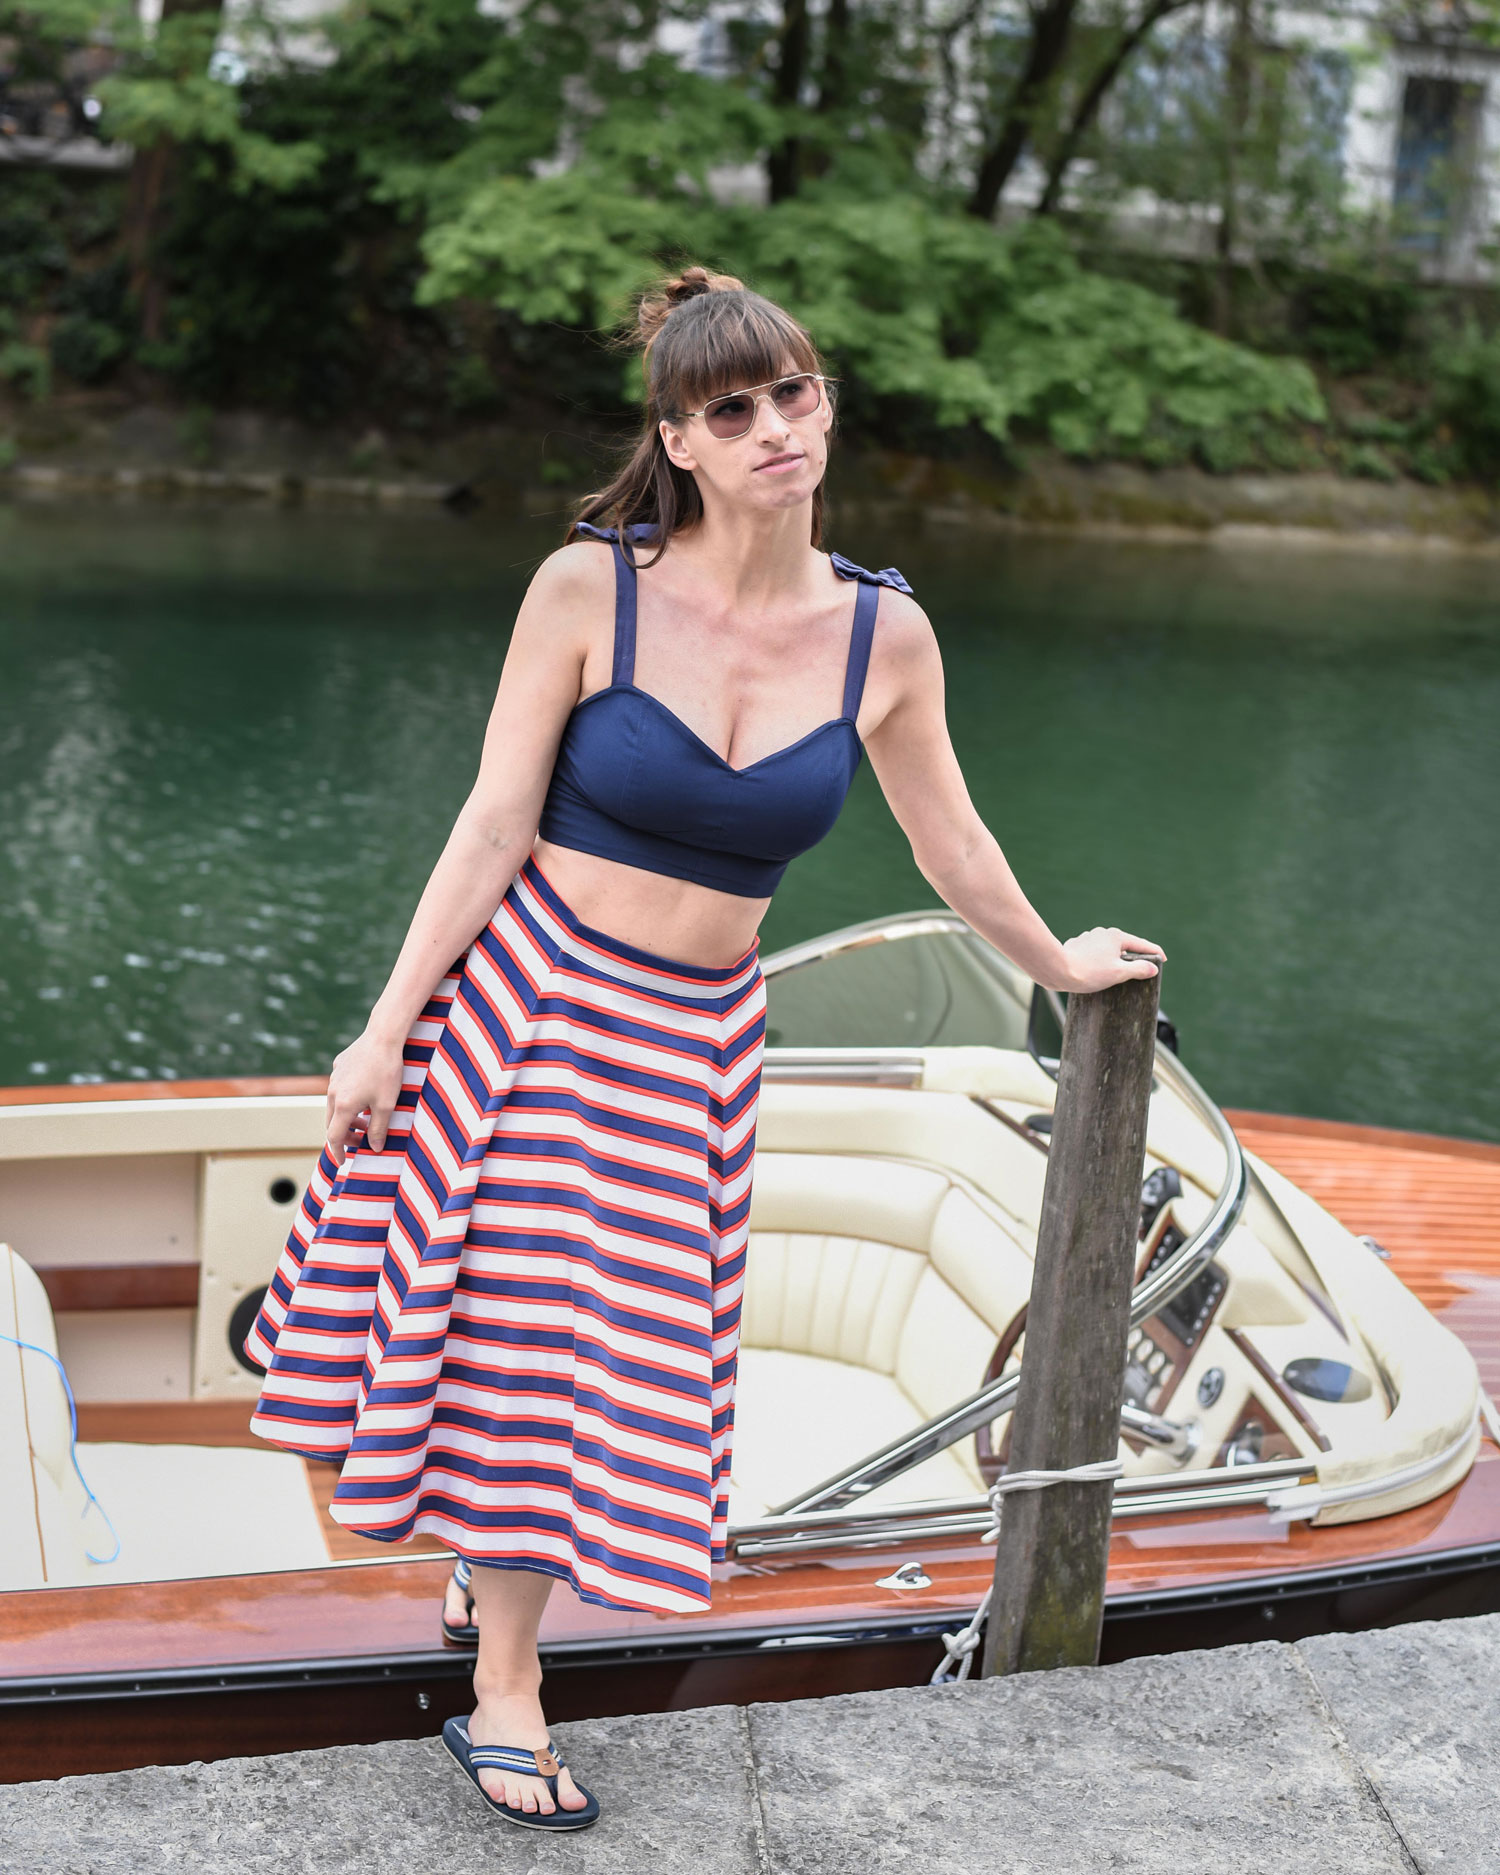 Crop Top von Collectif London, Rock von Collectif London, Flip-Flops von Tommy Hilfiger